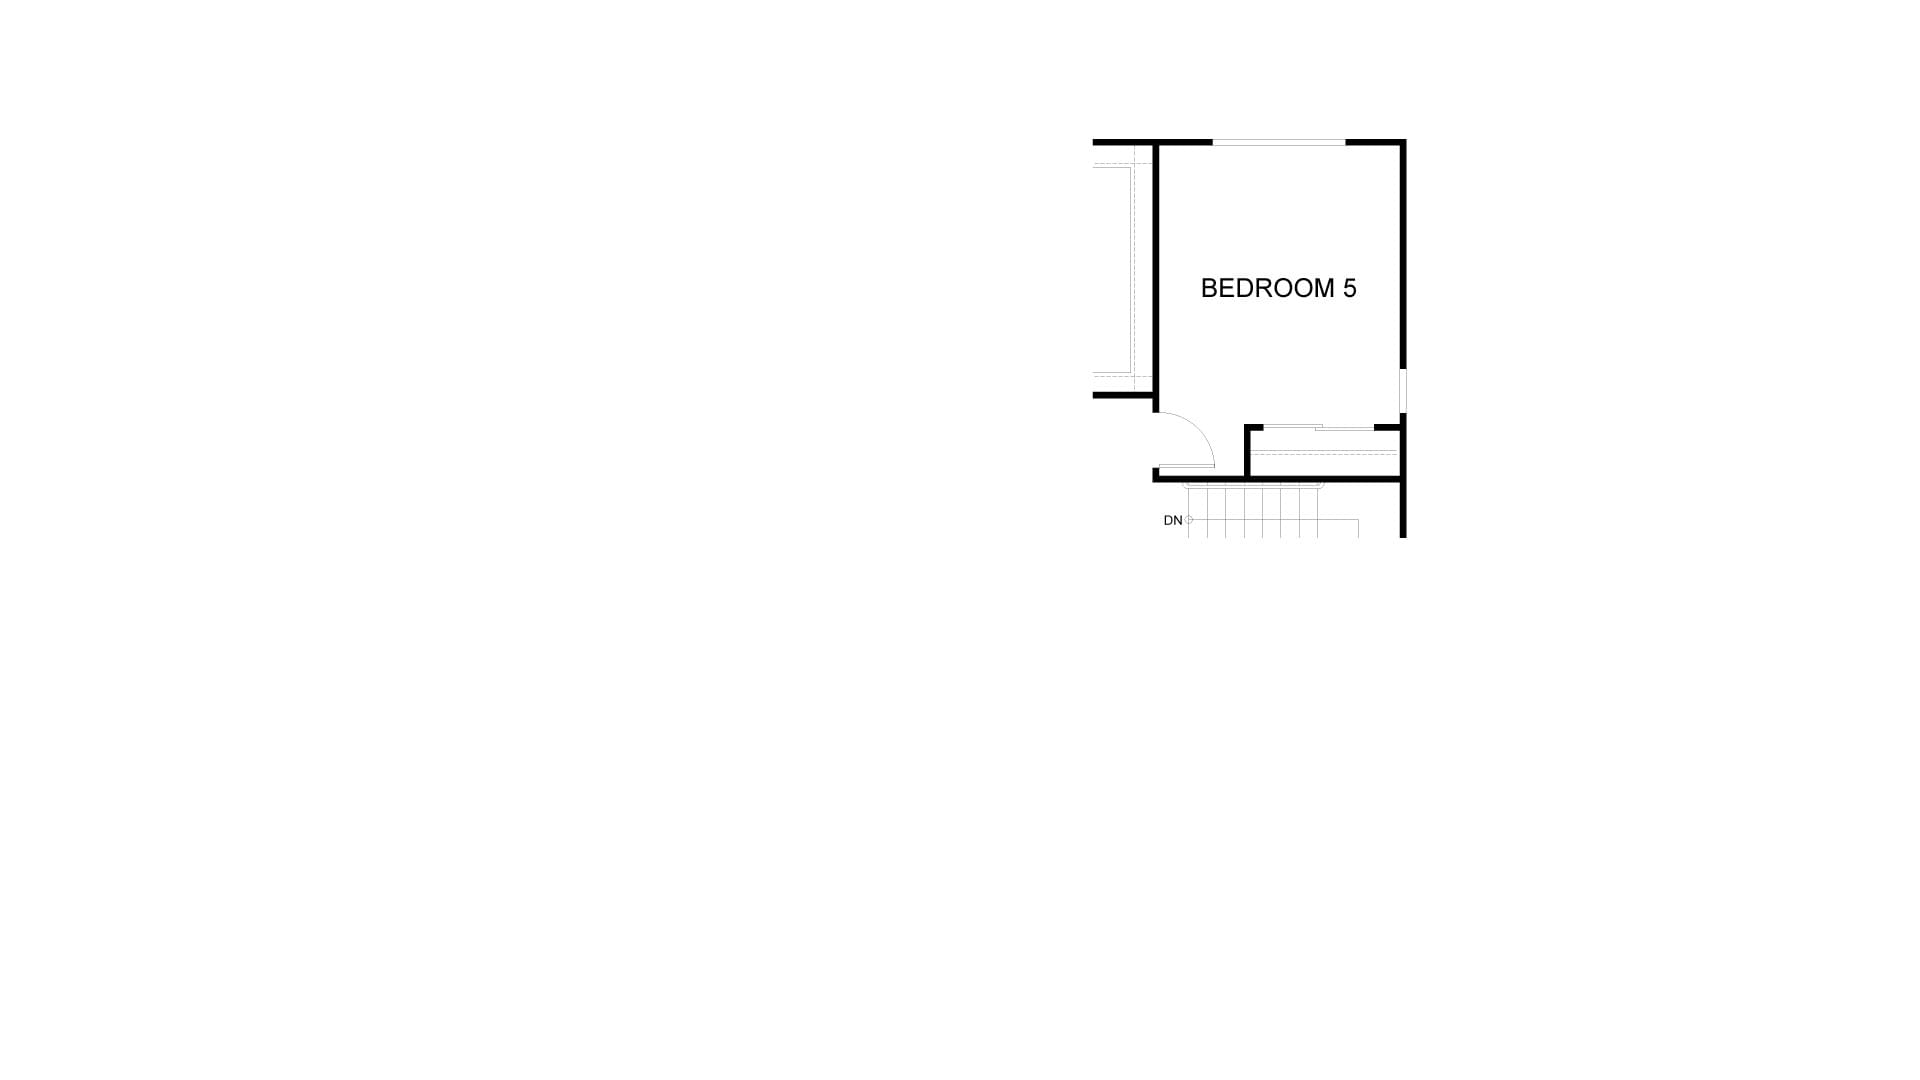 Bed 5 Option. Residence 4 New Home in Antioch, CA